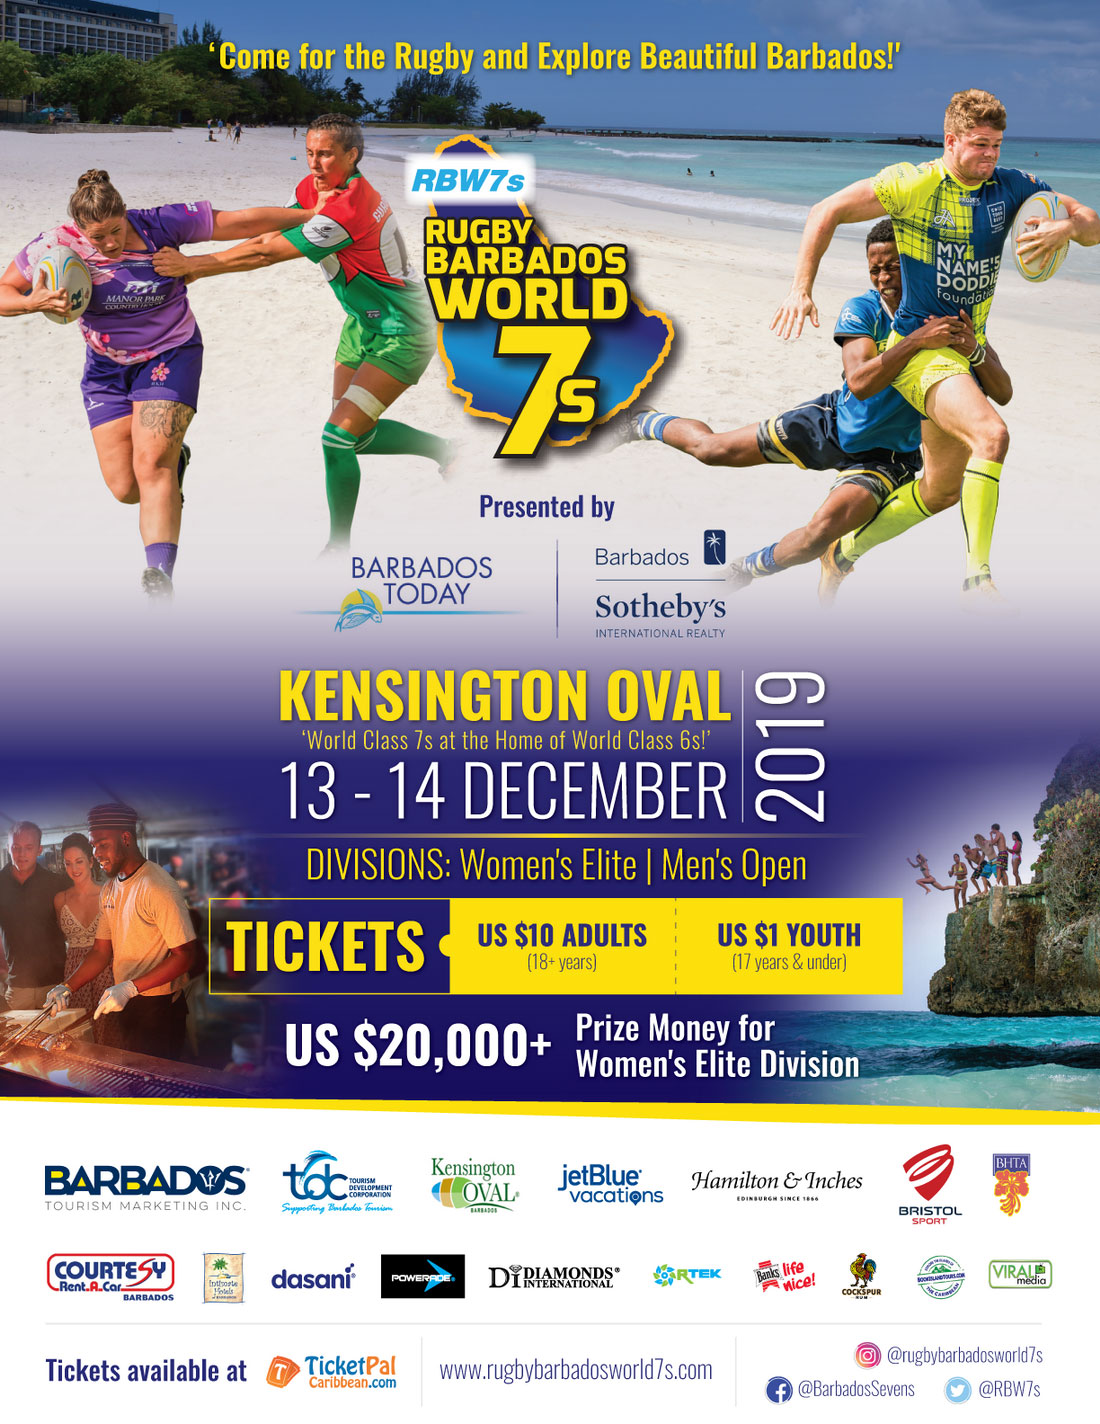 Barbados Rugby tourney announces exciting new partnerships